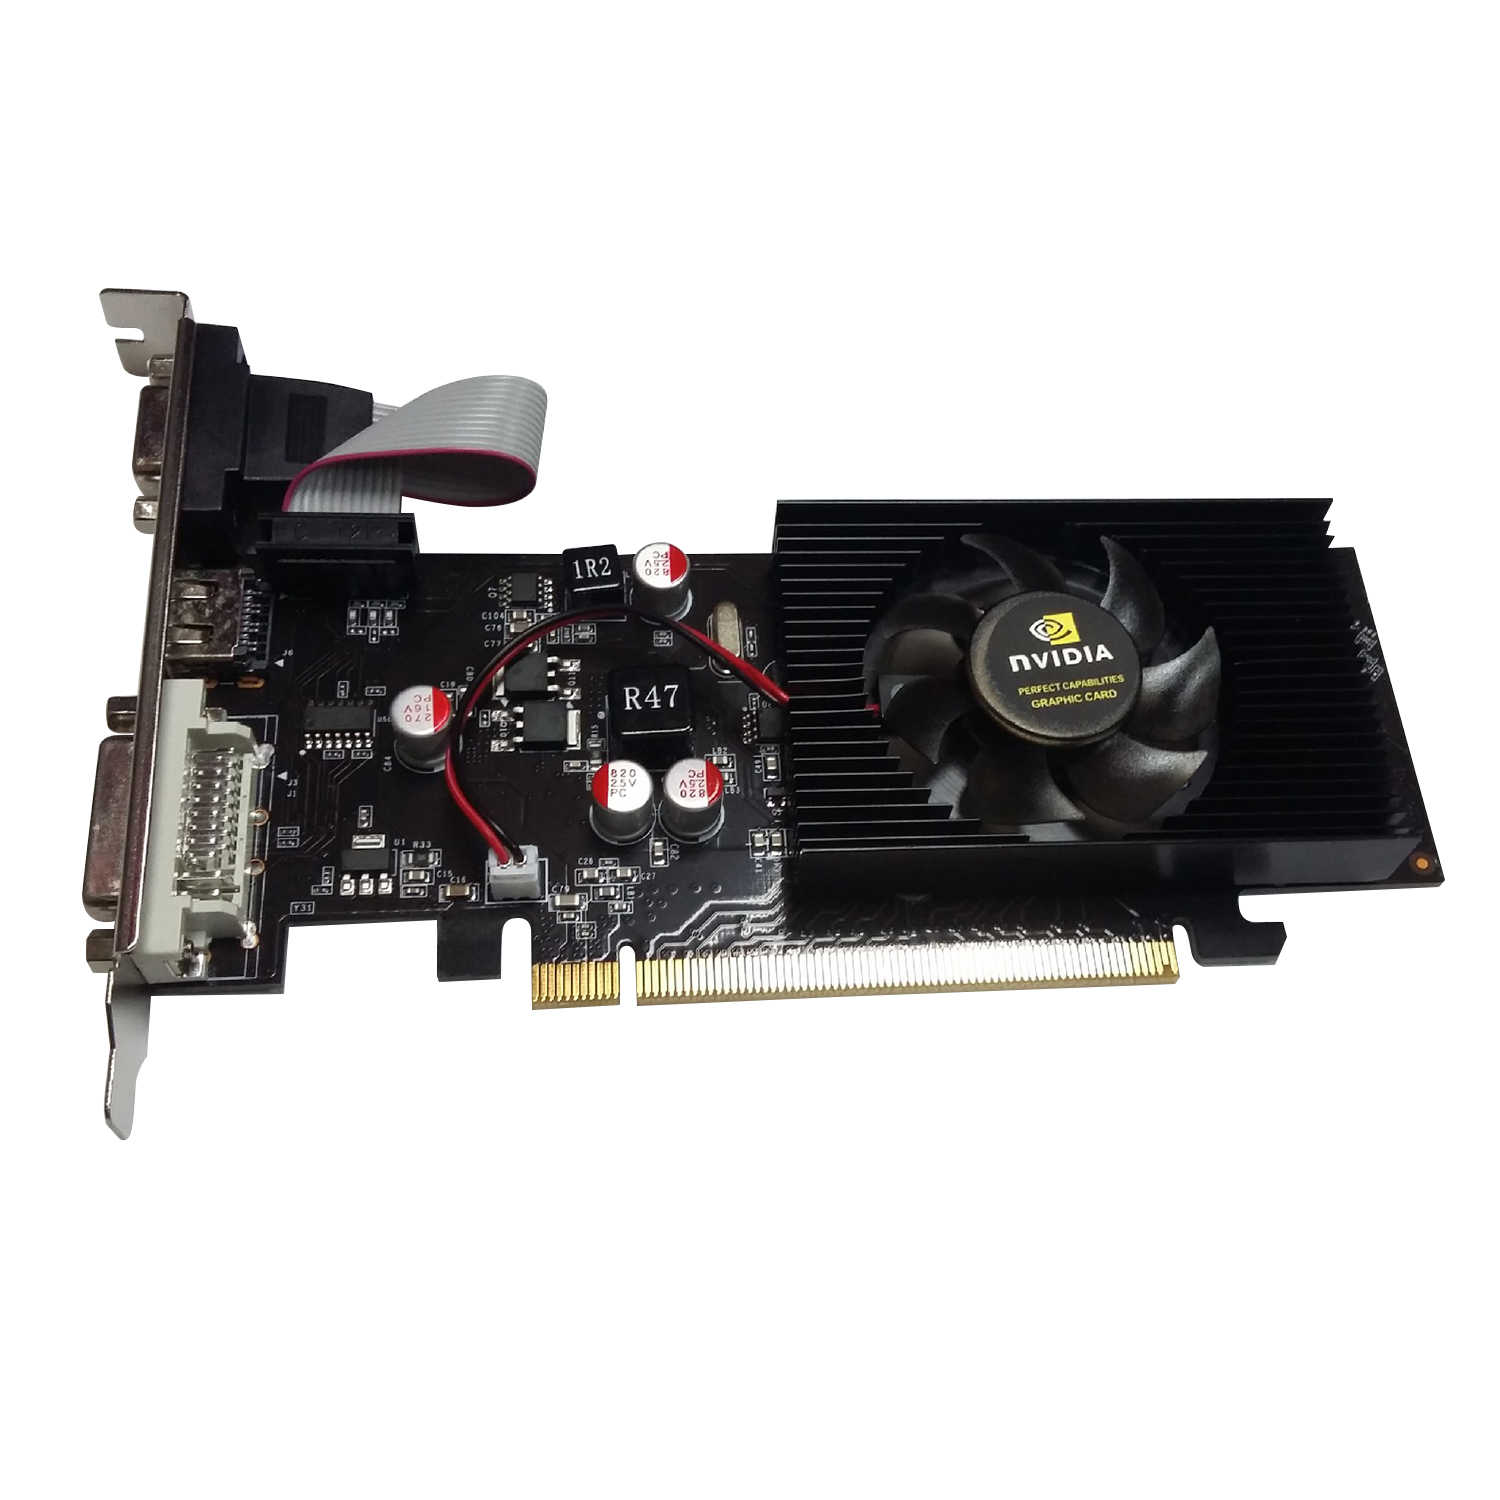 With NVIDIA Half Height Graphics GT610 1GB GT 610 1G D2 64bit Half Height Card